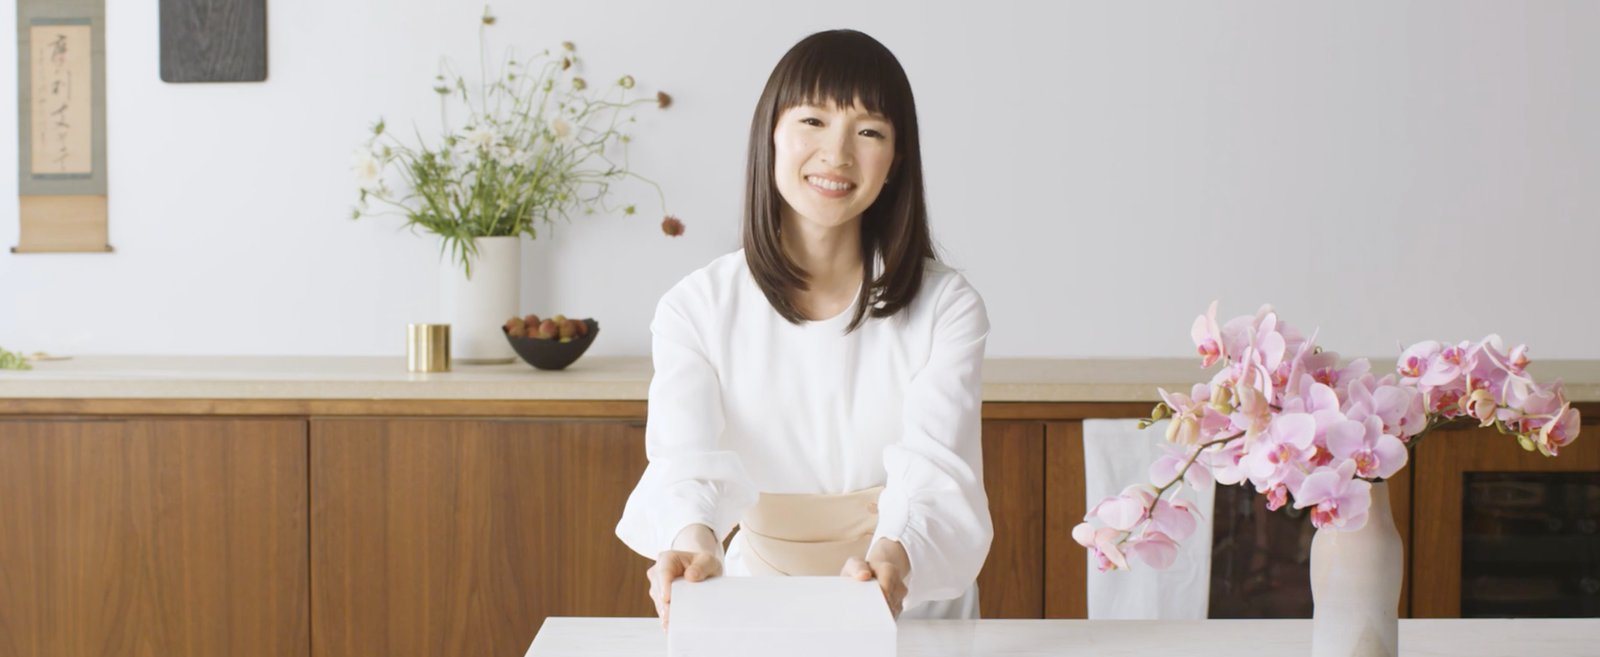 Screen shot from of Marie Kondo. She is undeniably likeable!